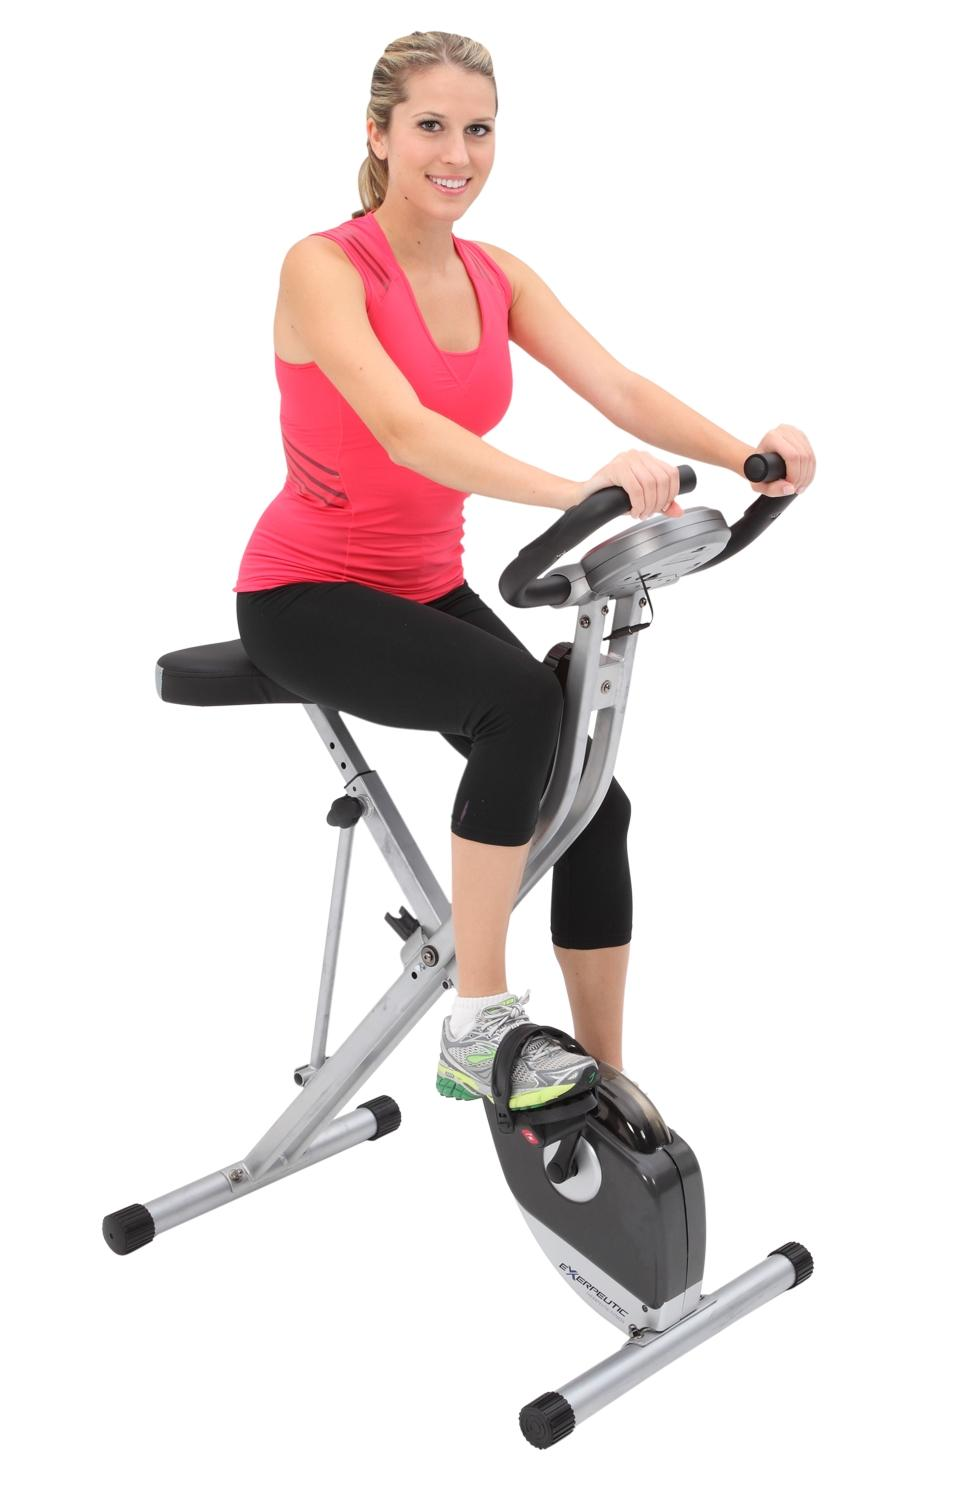 sirius fitness upright cycle 178 manual